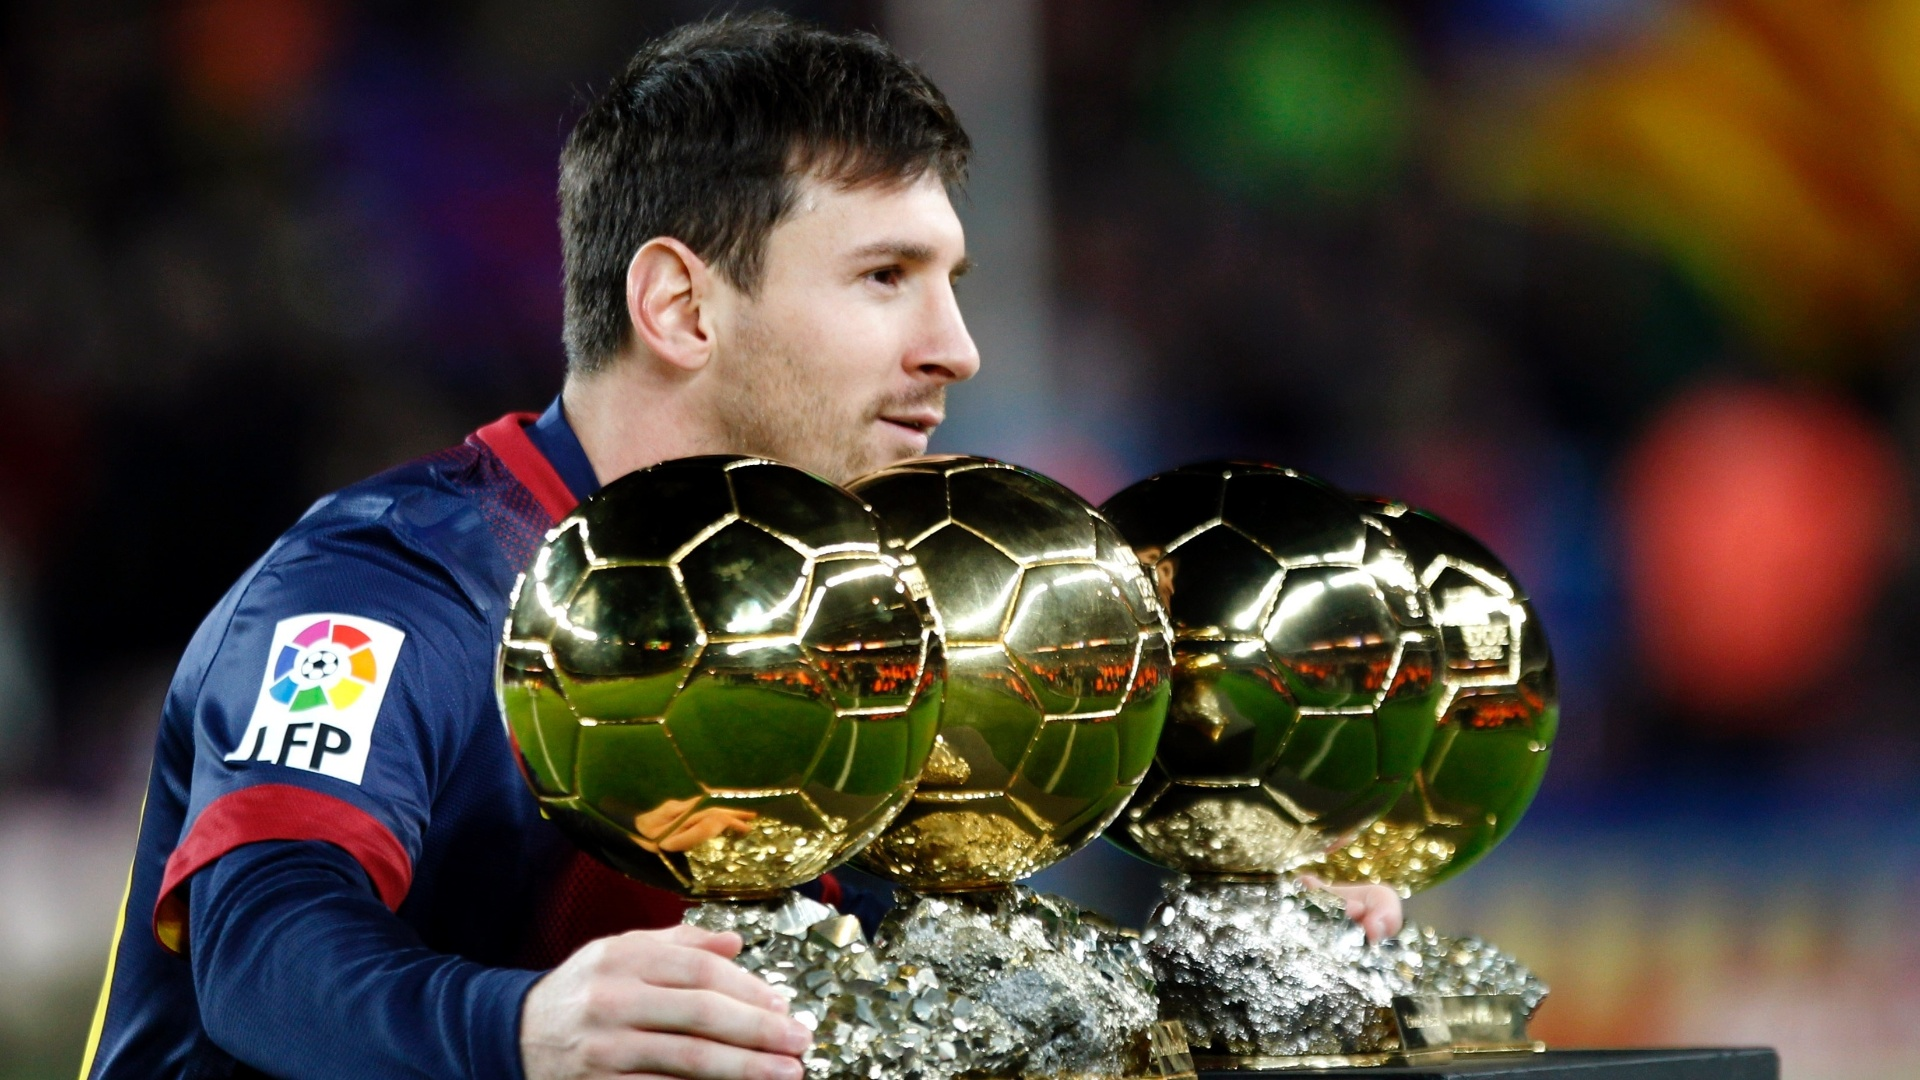 Messi Photos 2014 Download , HD Wallpaper & Backgrounds